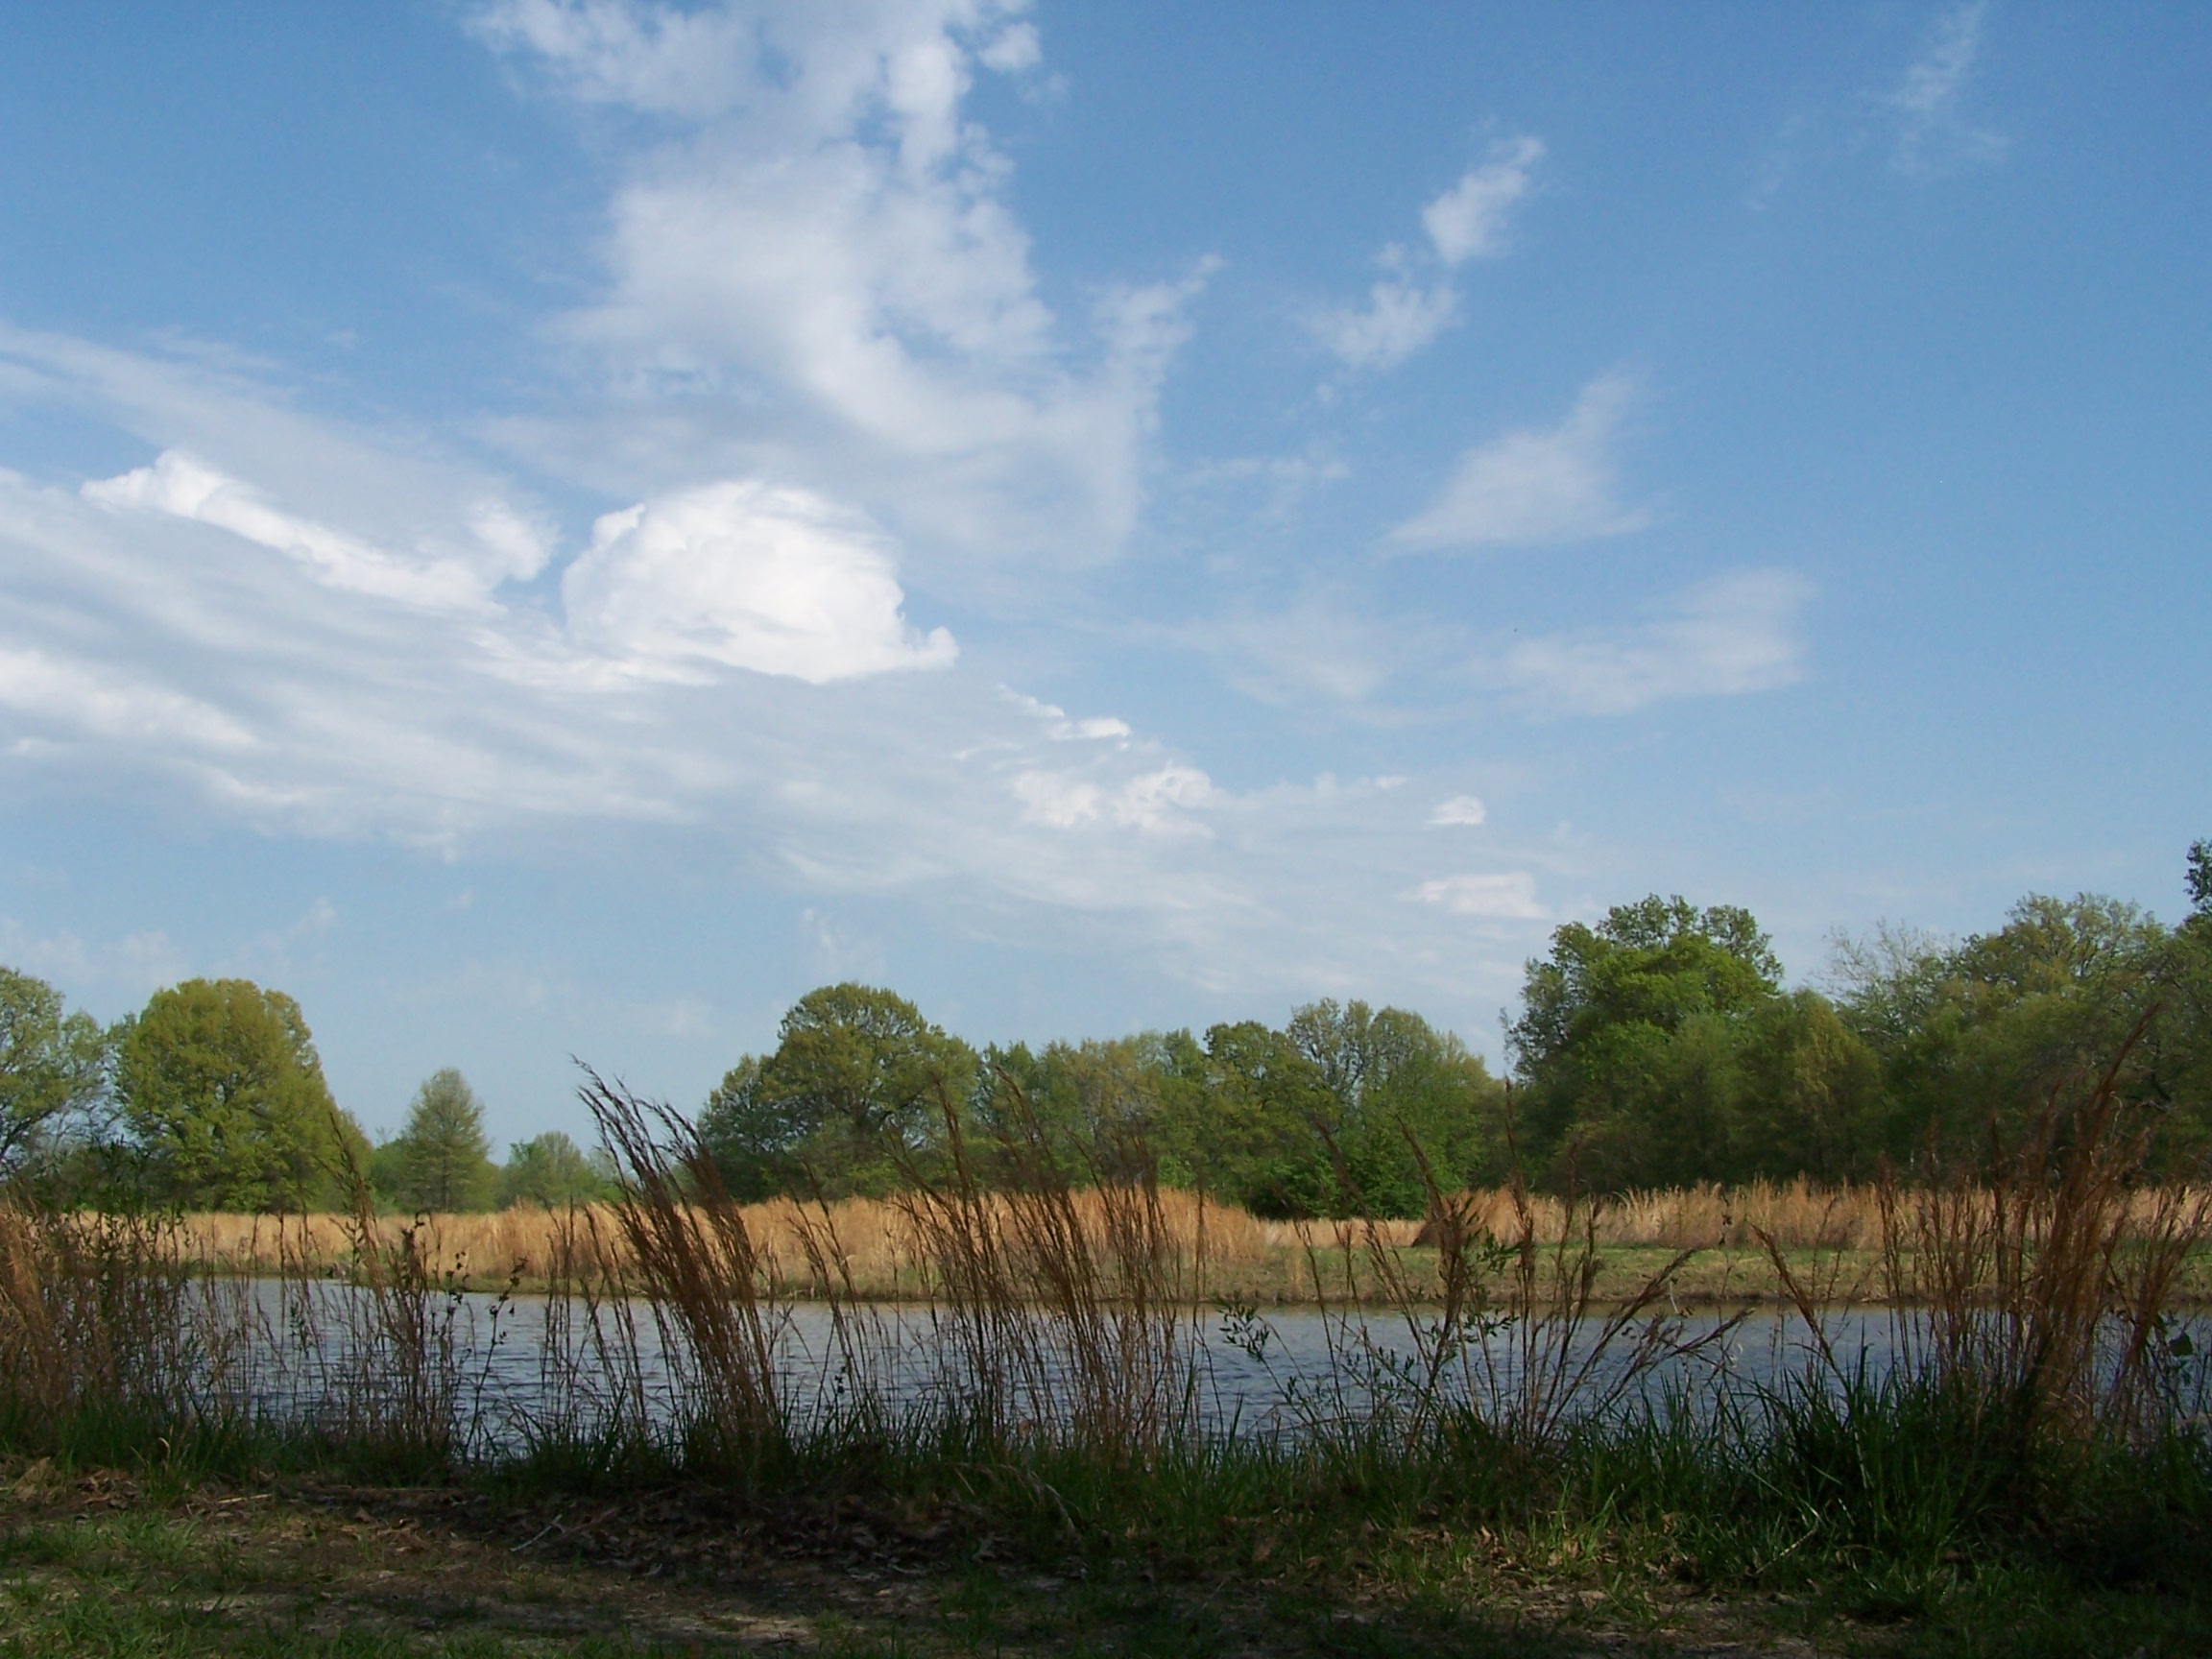 Clouds over the Wetland